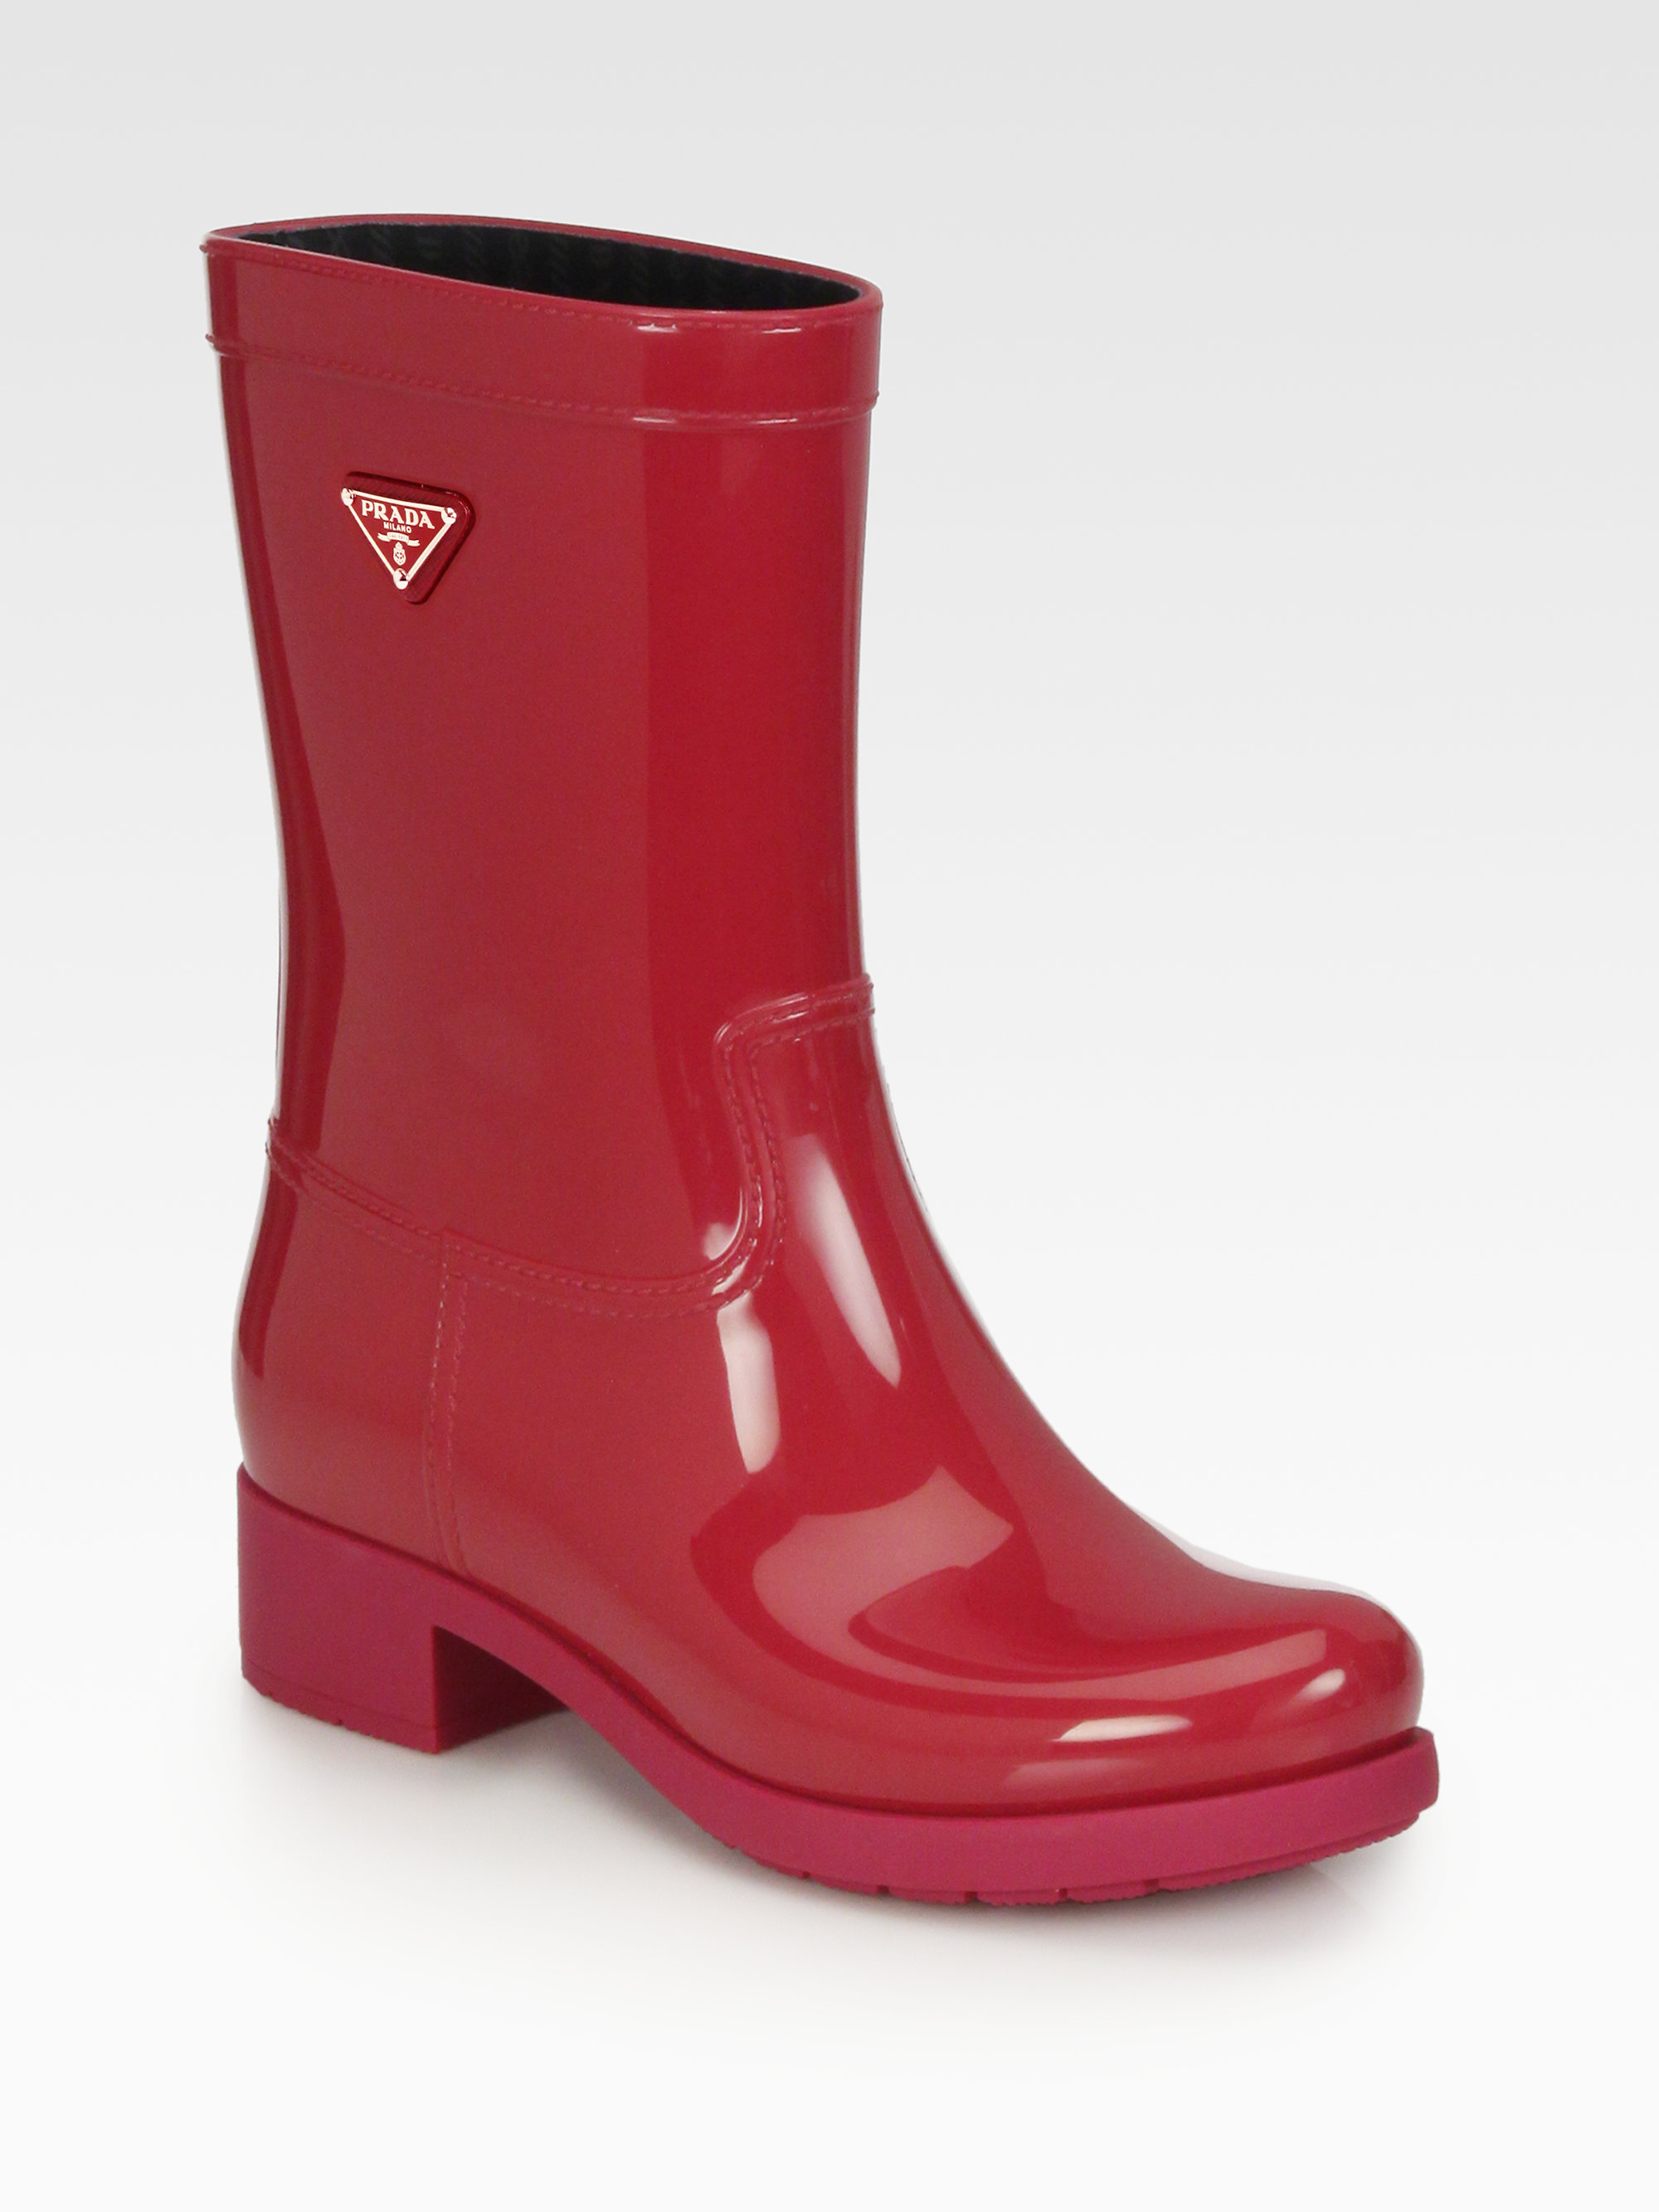 Prada Short Logo Rain Boots in Red | Lyst